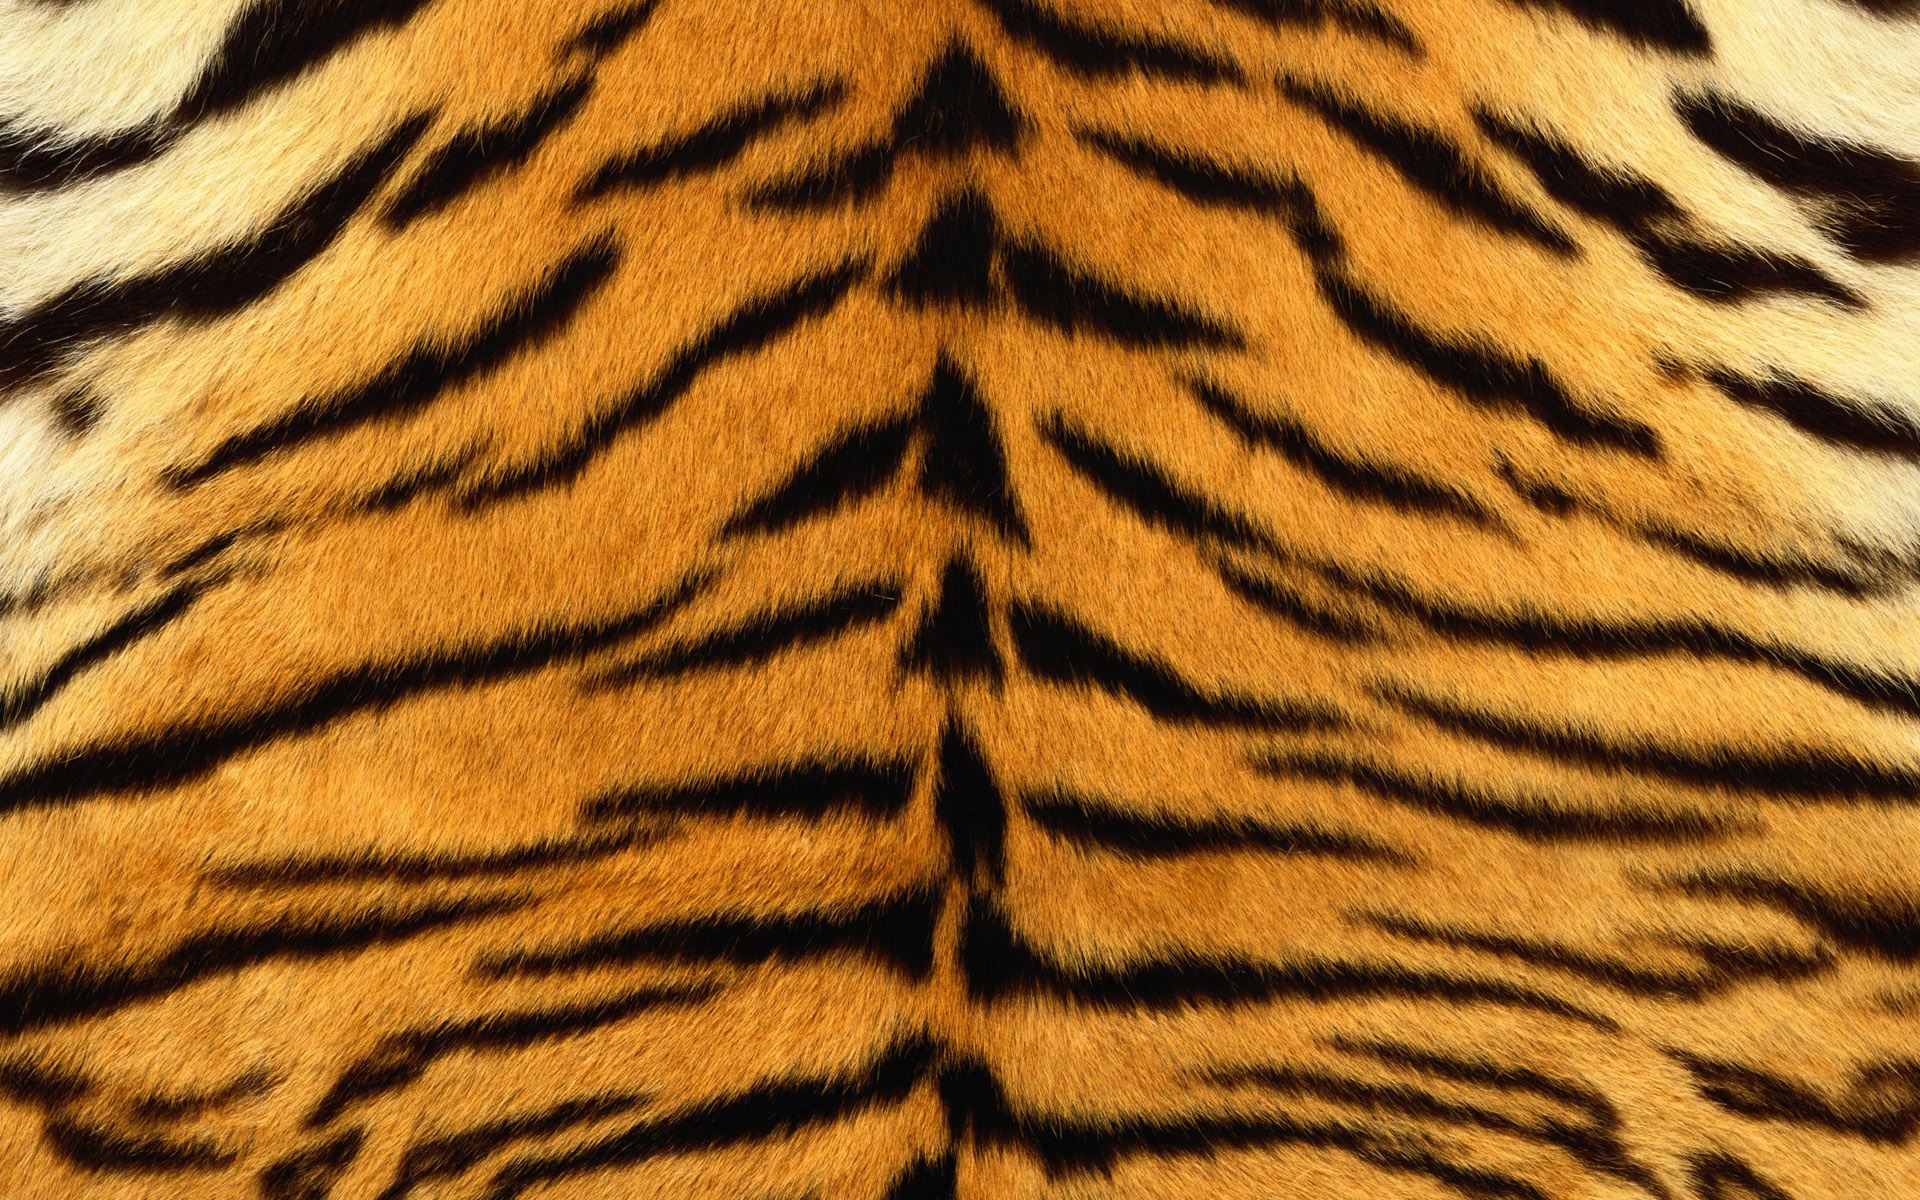 2 Tiger Print HD Wallpapers | Backgrounds - Wallpaper Abyss